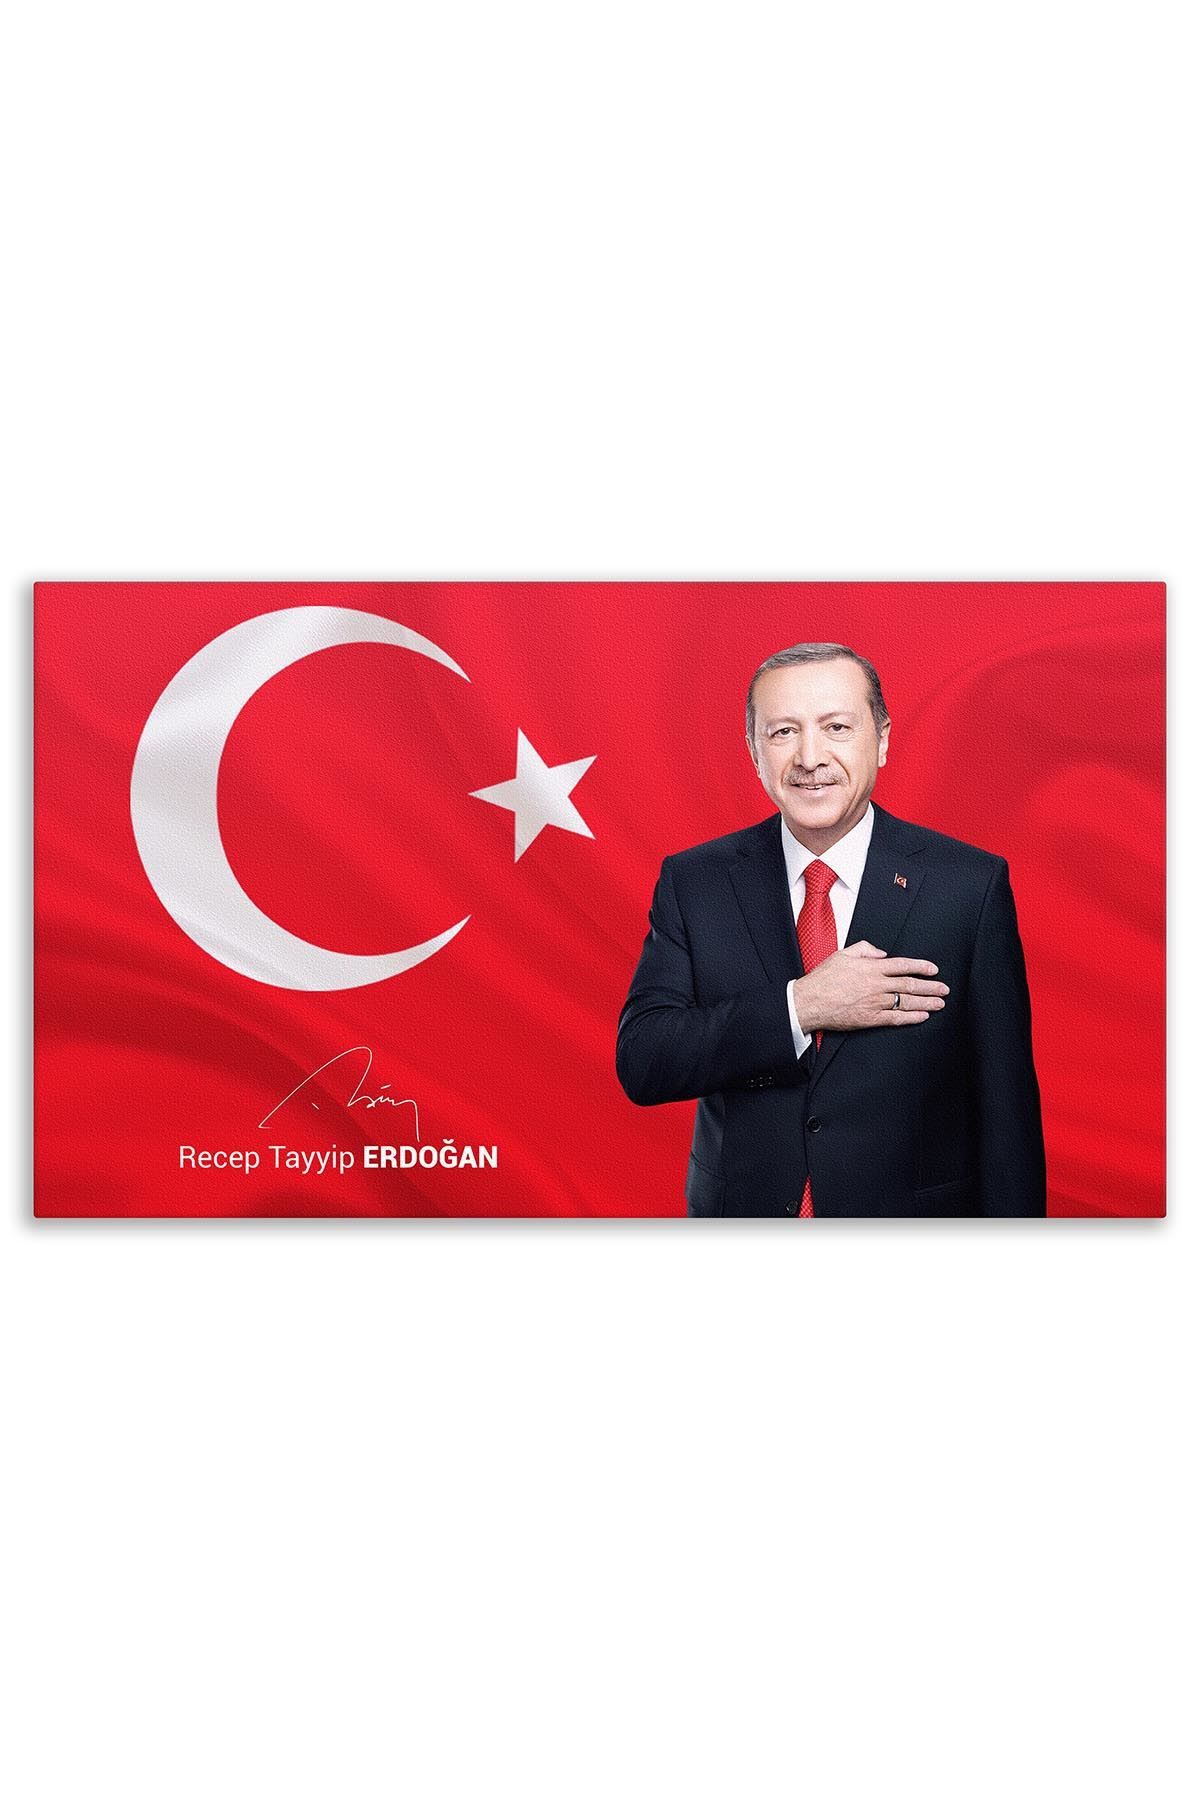 13th Turkish President Recep Tayyip Erdoğan Canvas Board | Printed Canvas Board | Customized Canvas Board |Digital Printing